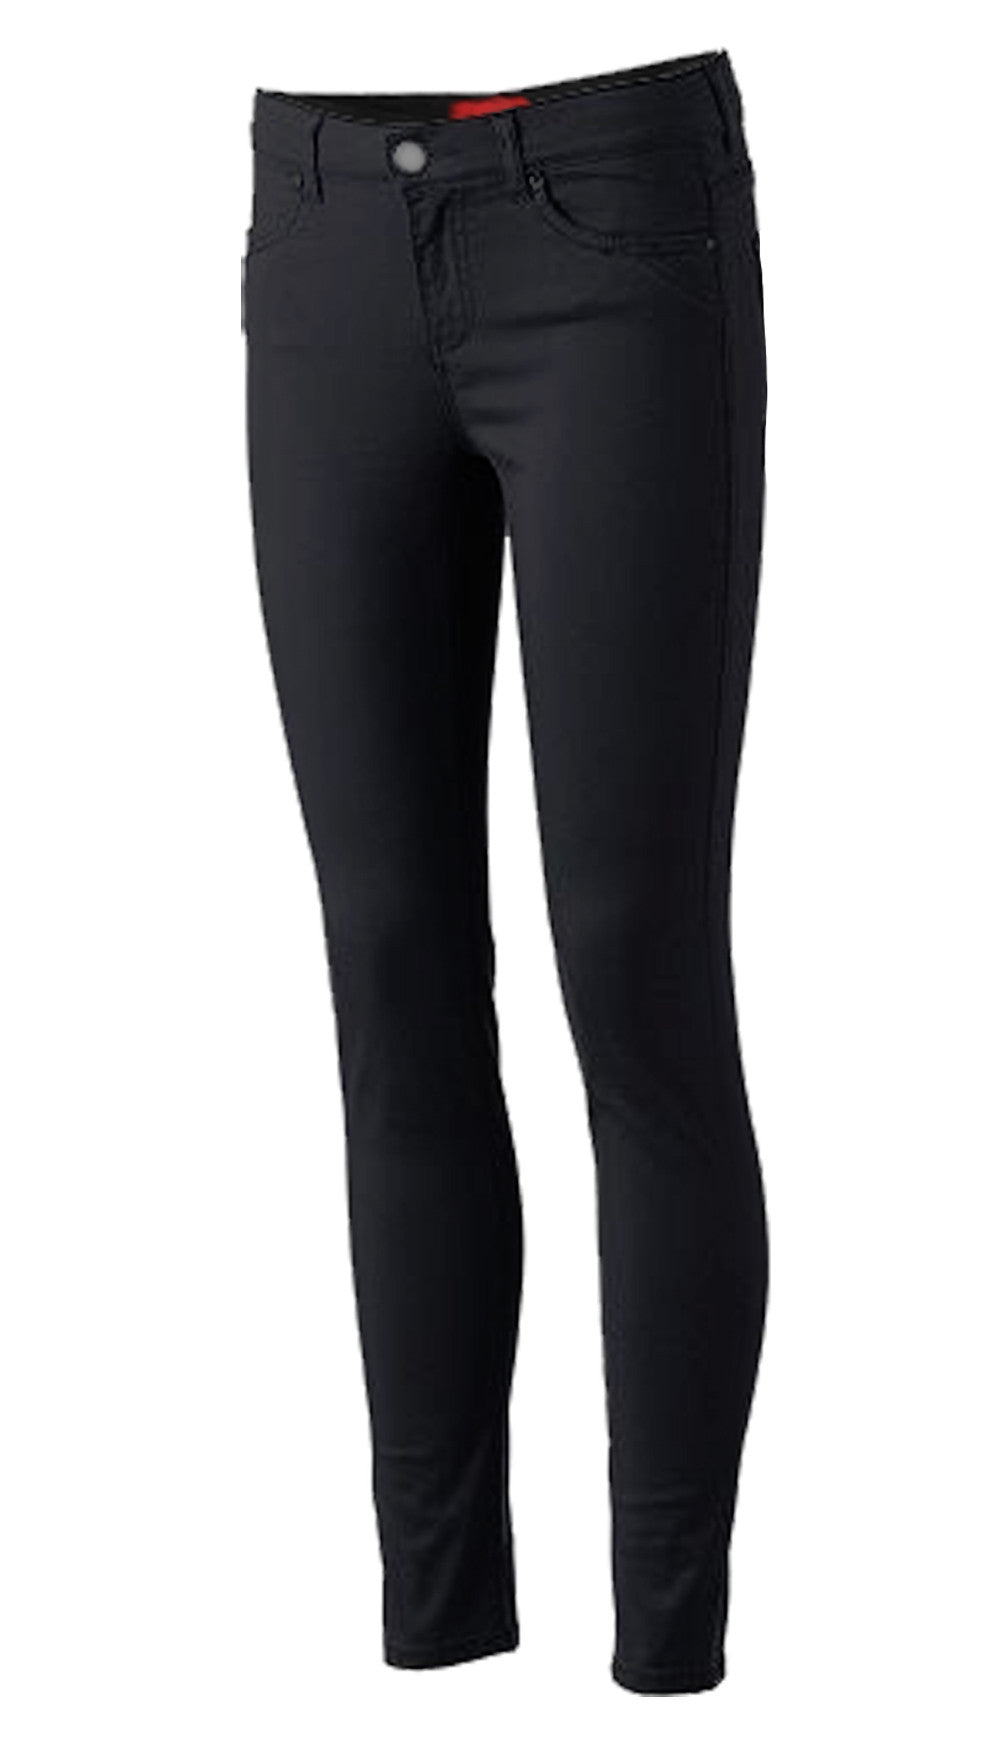 Girls Skinny Pants-P80 - Pro 5 Apparel